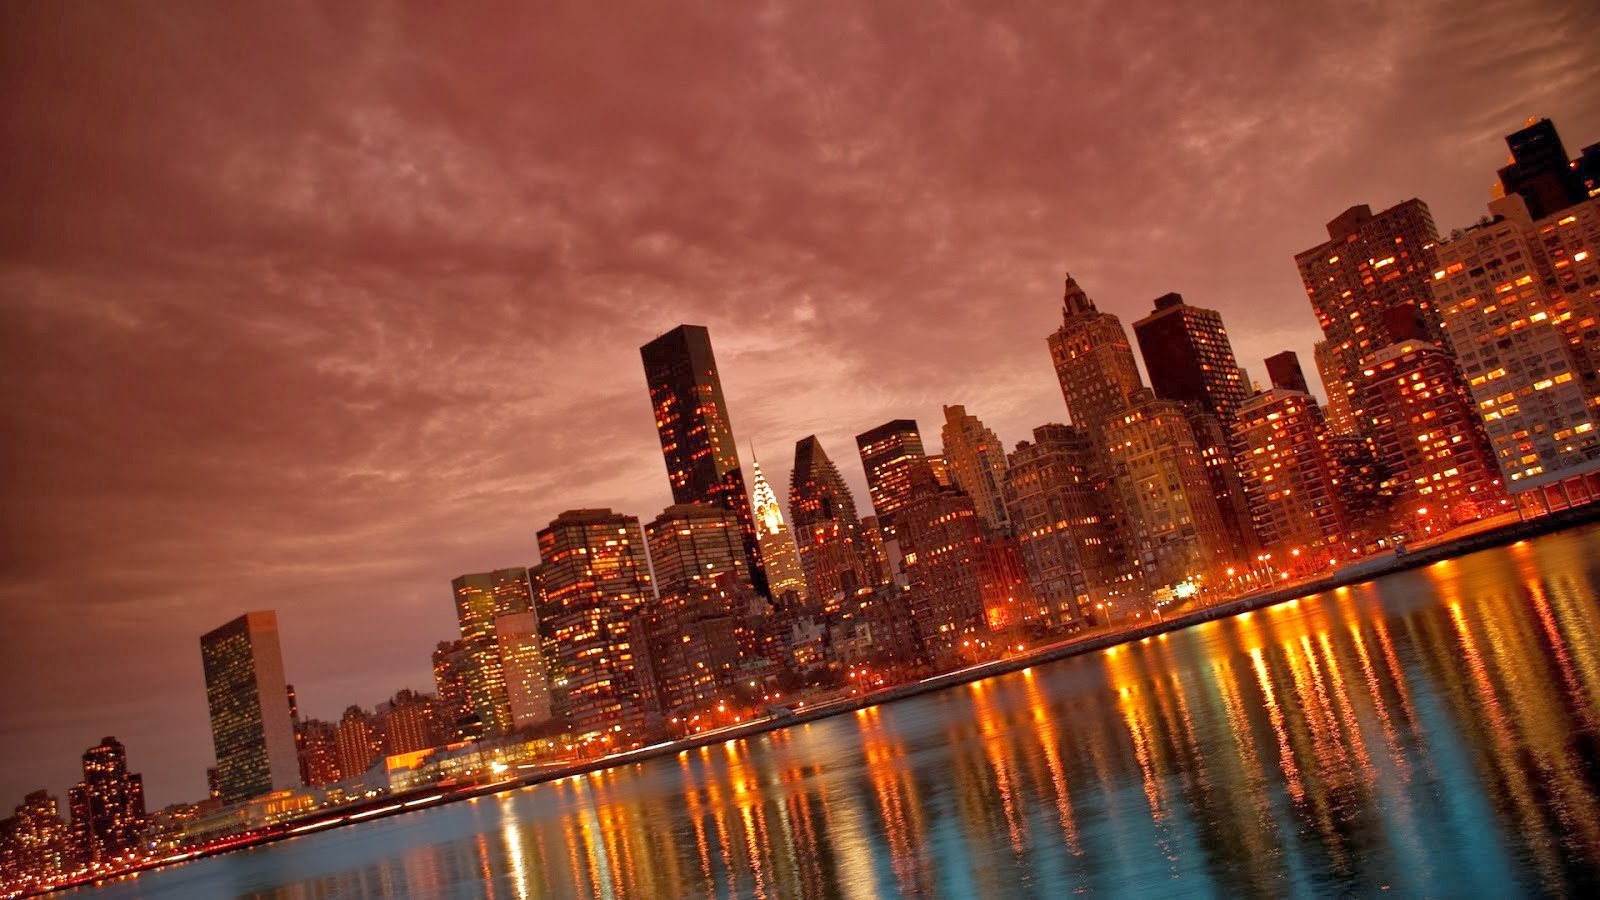 Hd Wallpapers Download New York City Hd Wallpapers 1080P-1786